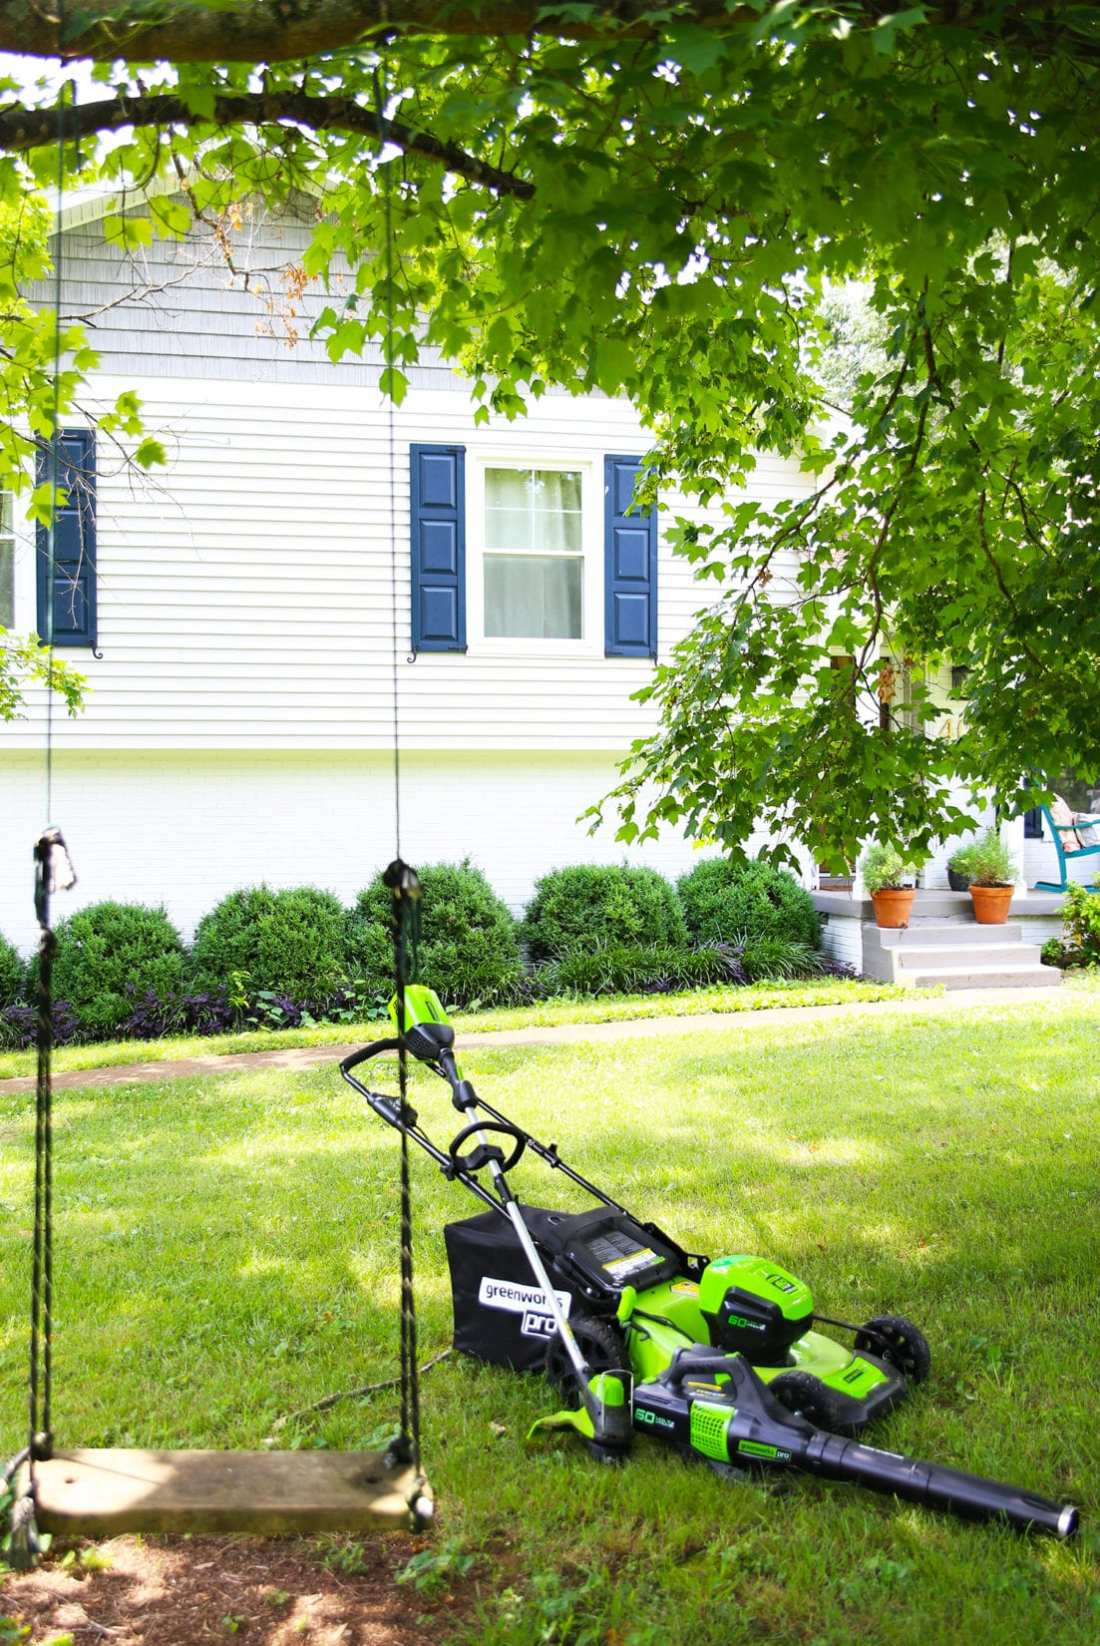 Is battery powered lawn equipment better?